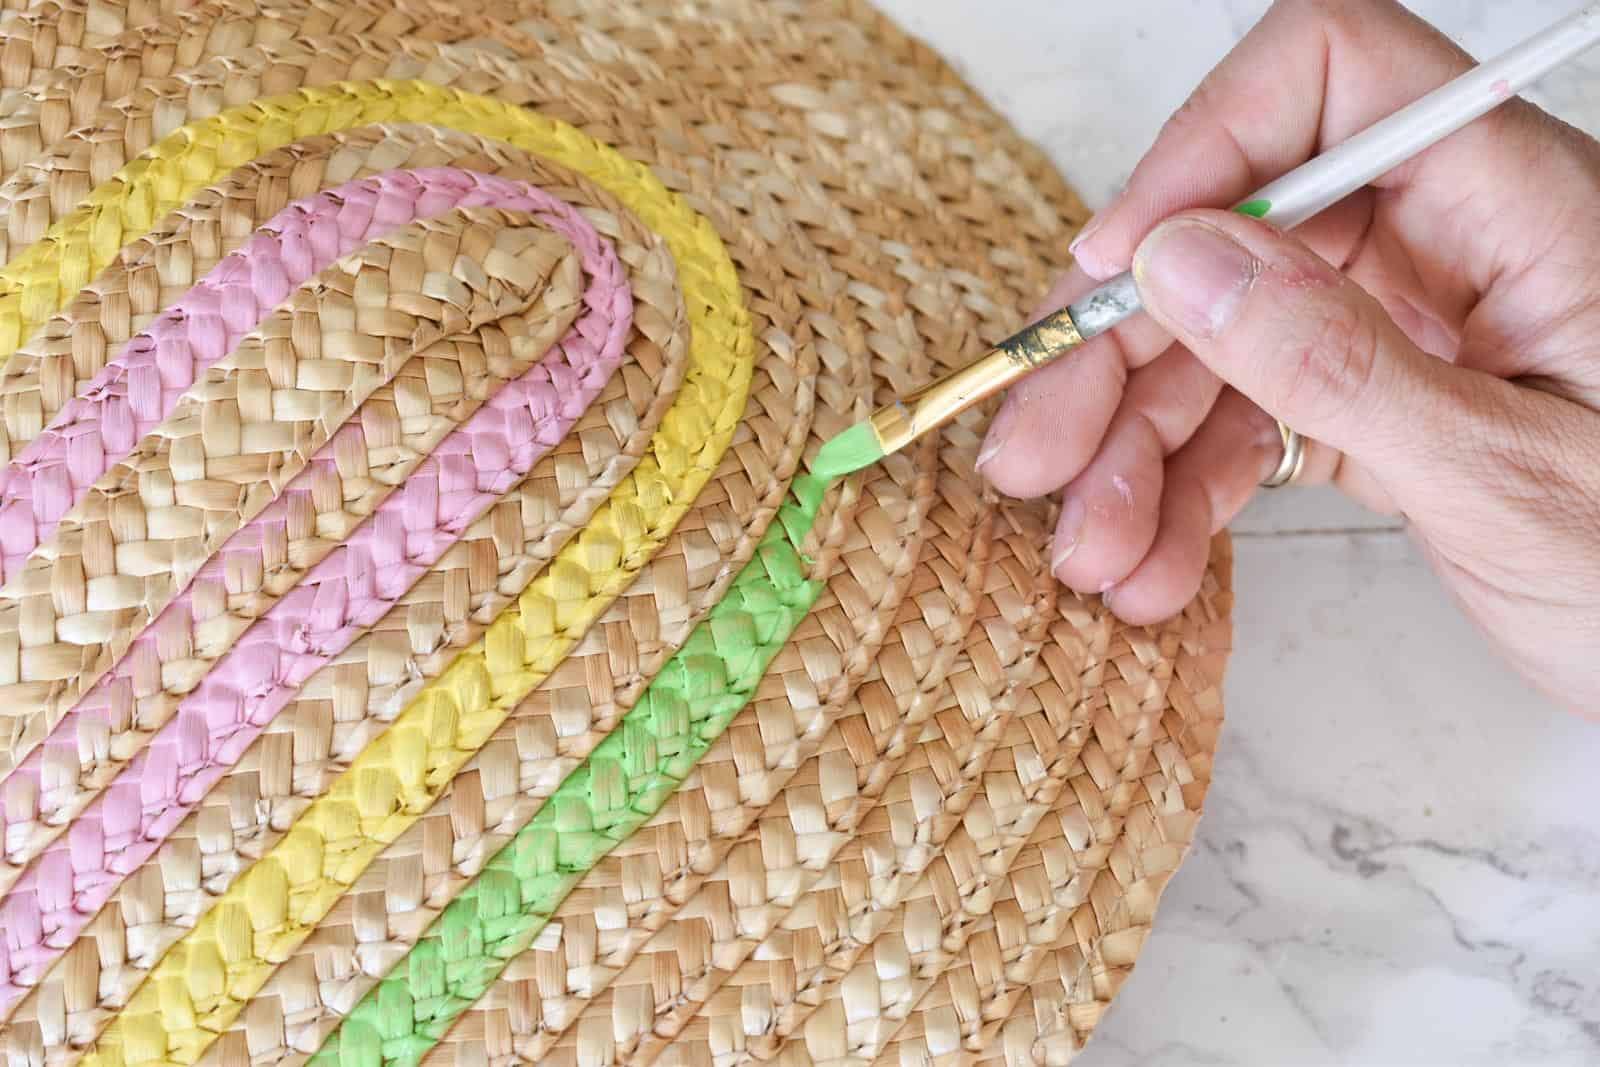 painting the straw clutch with rainbow colors